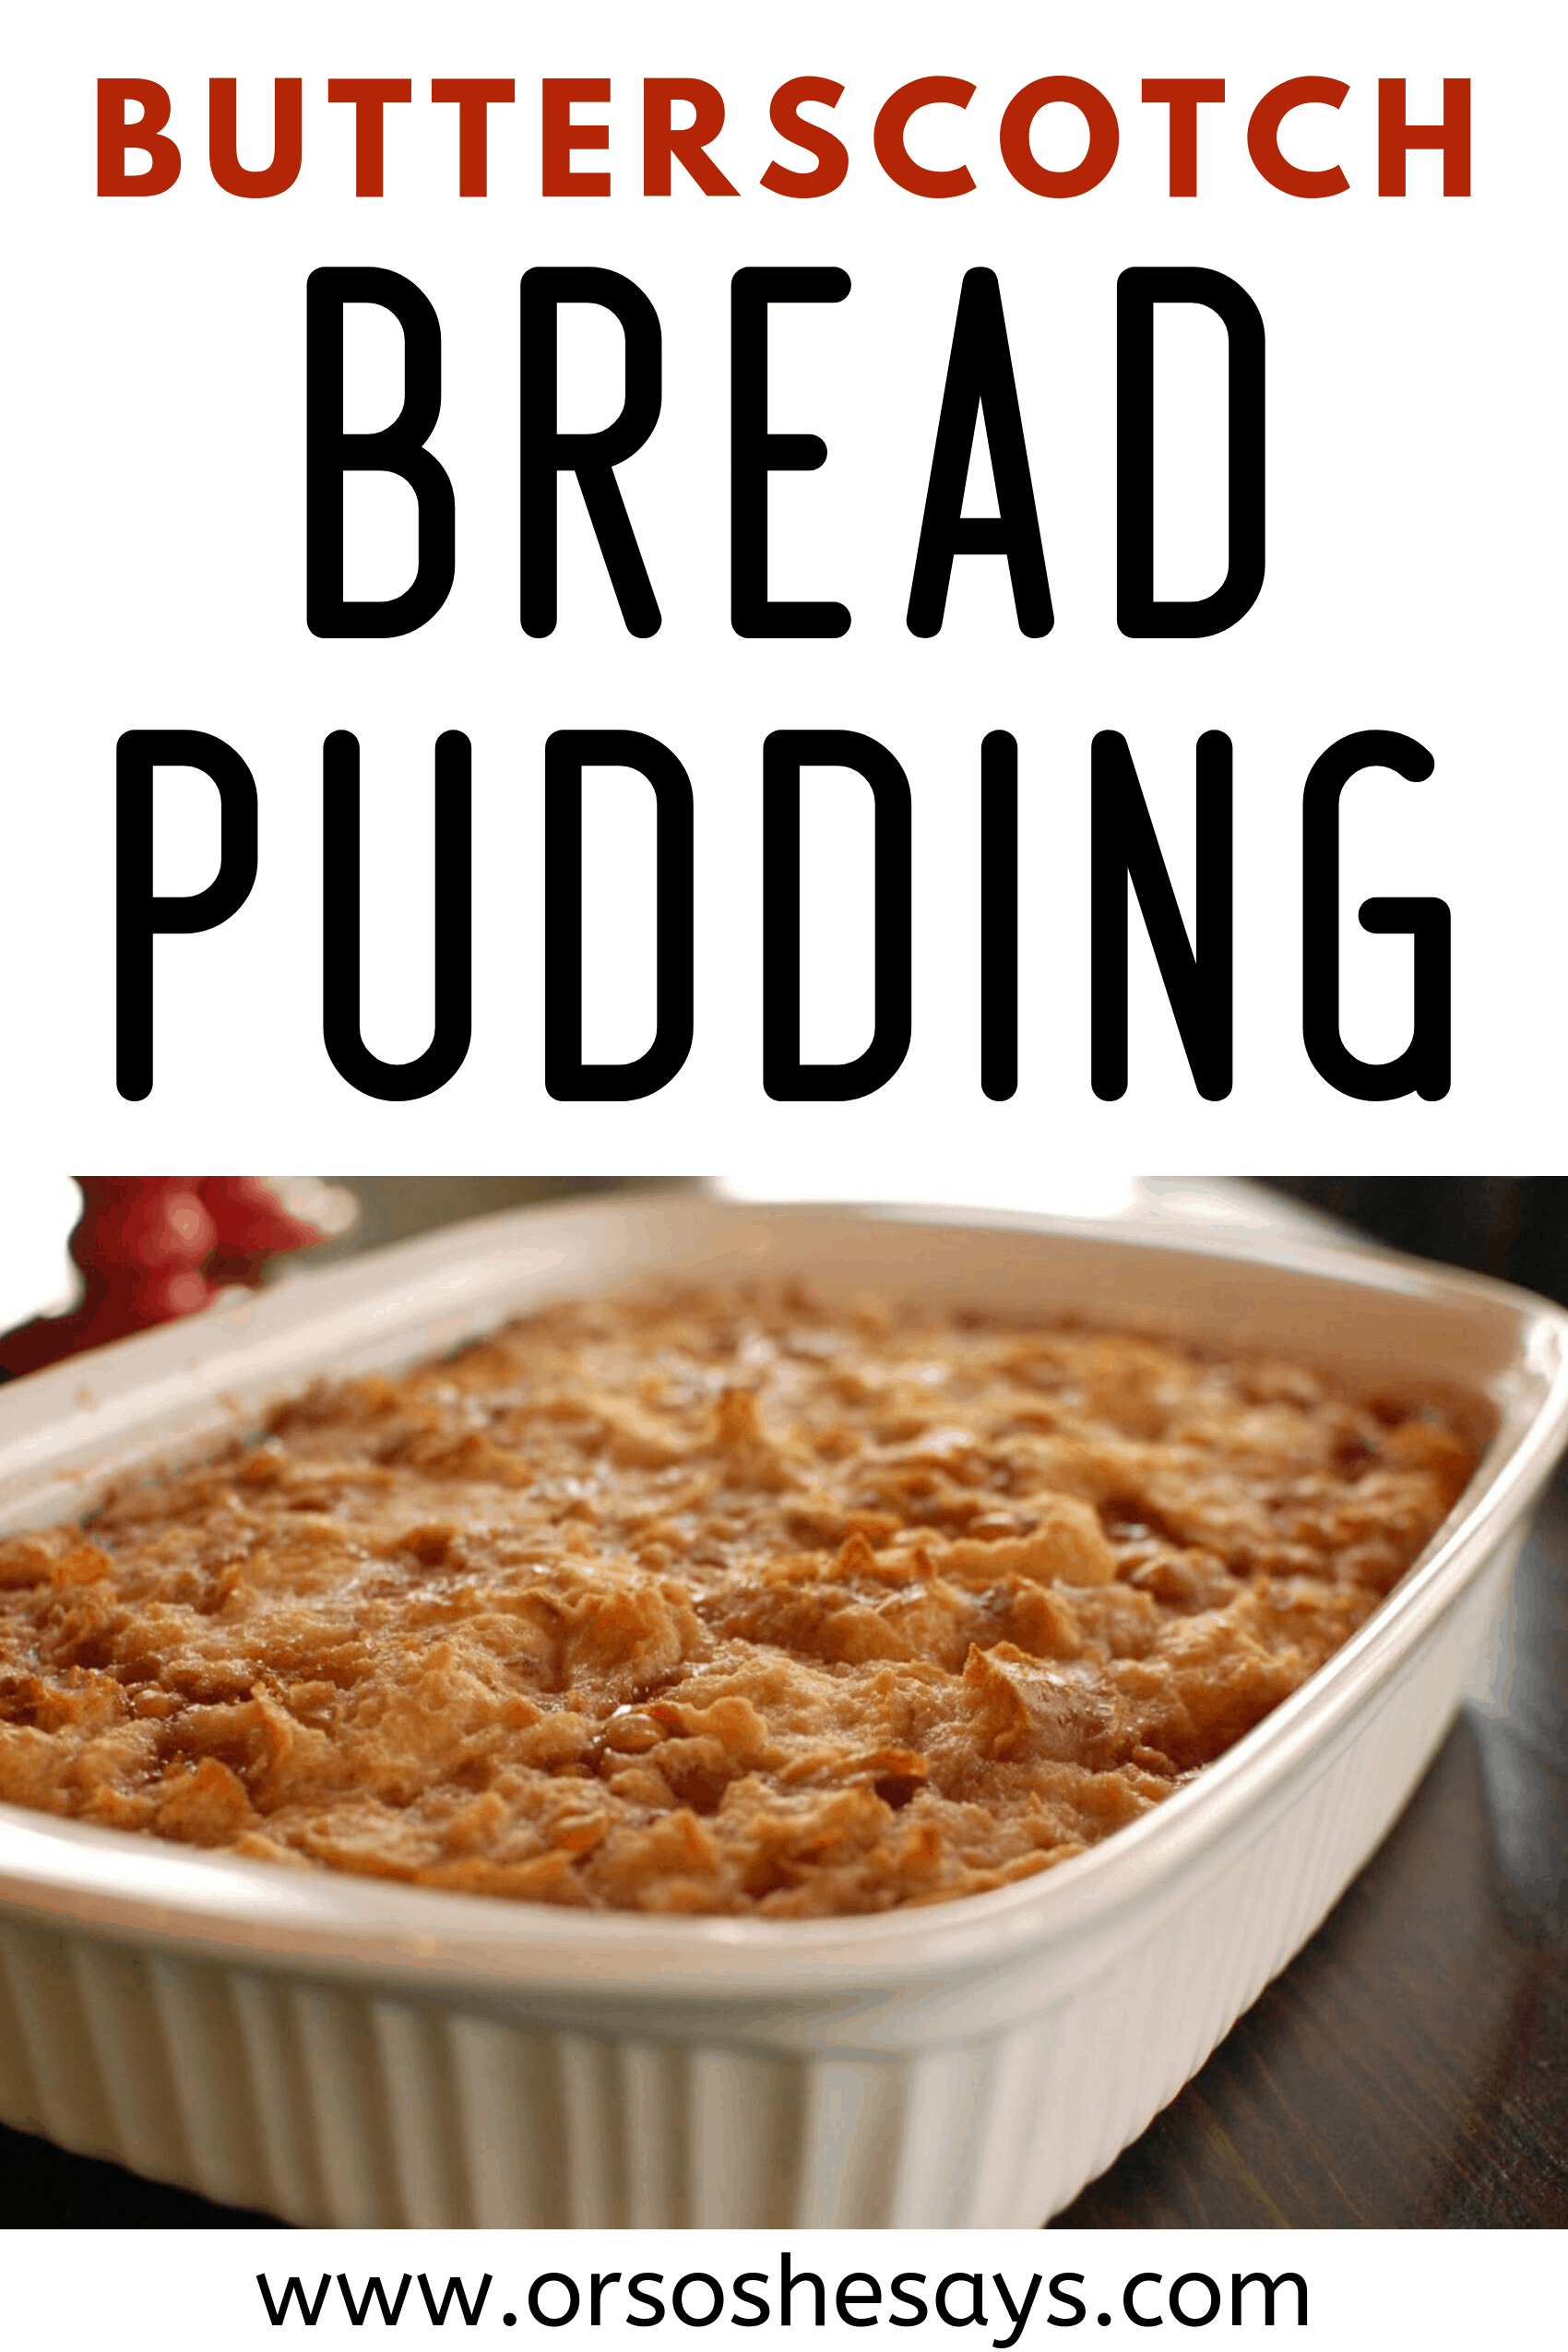 Southern Bread Pudding